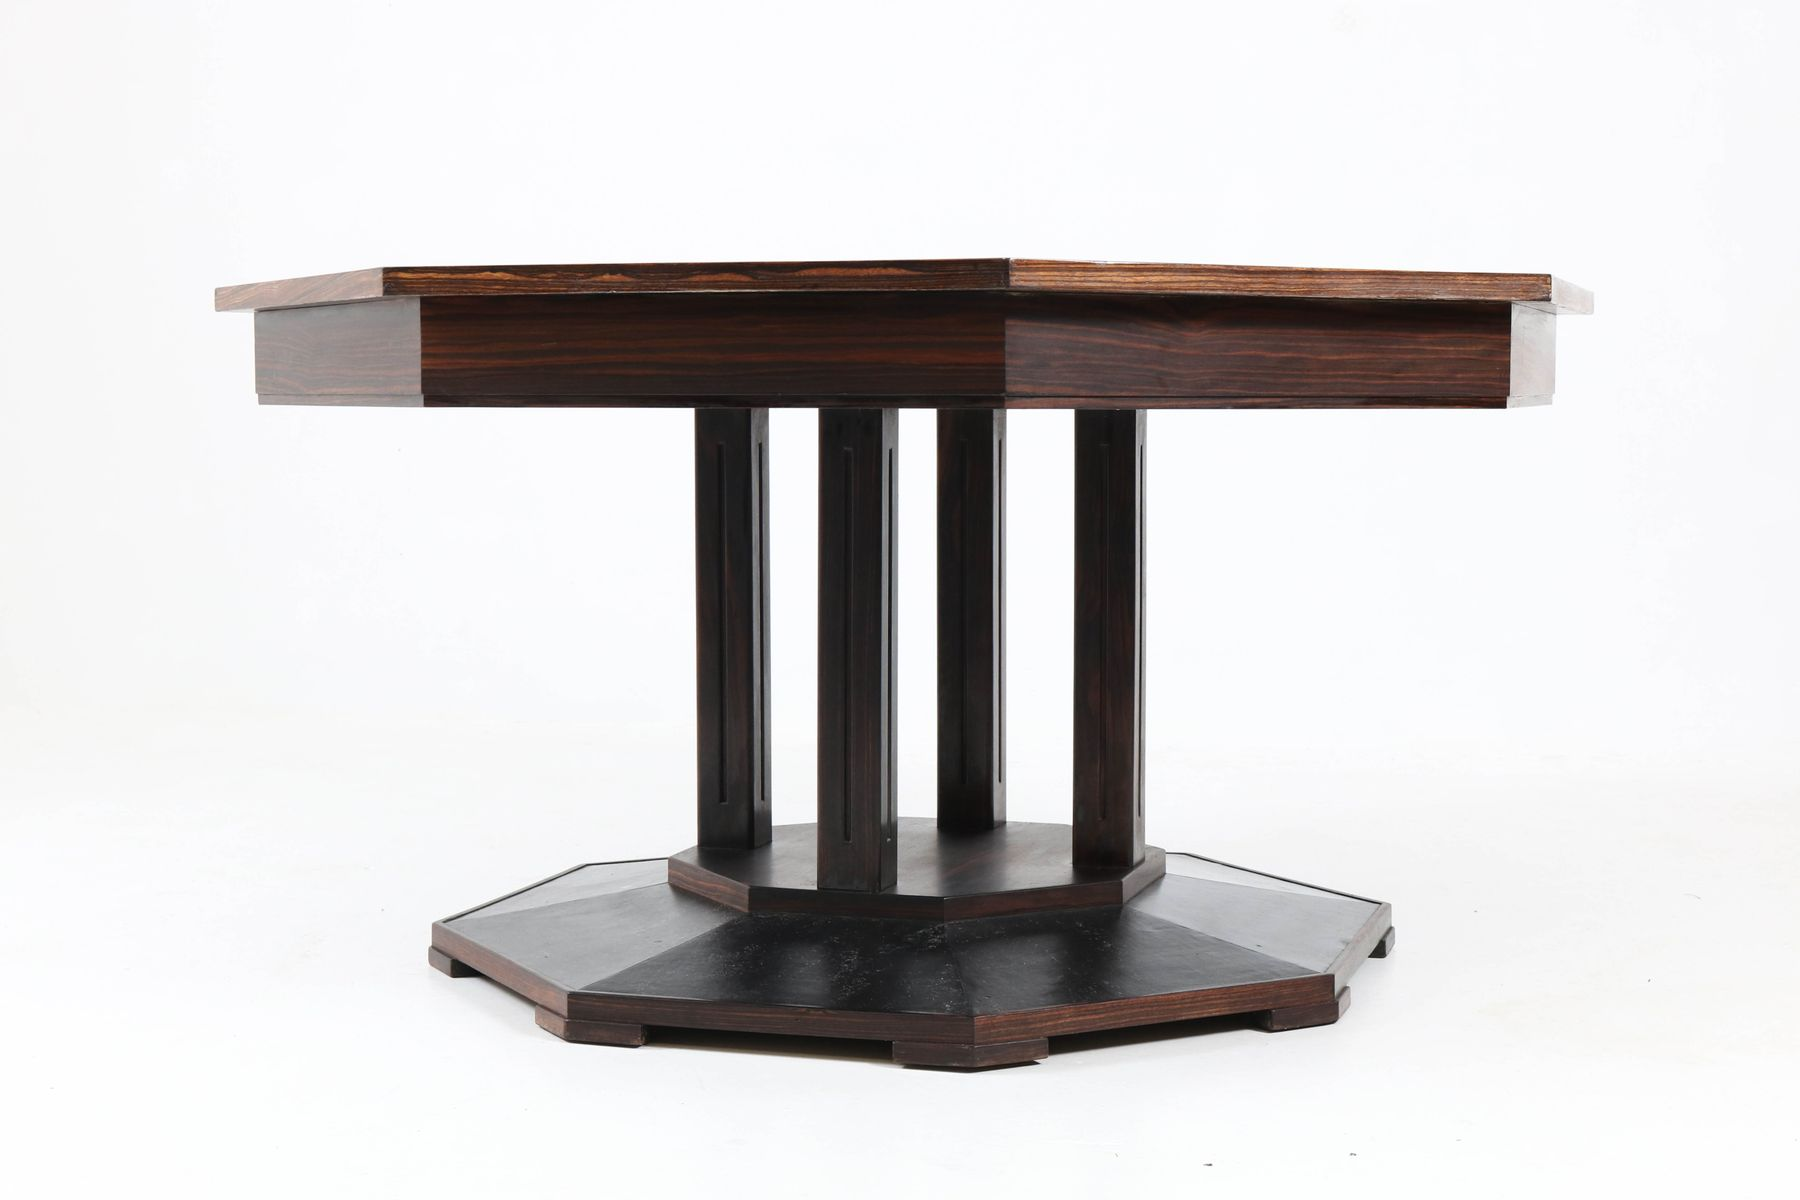 Art Deco Dutch Macassar Ebony Center Table From U0027t Woonhuys, 1930s